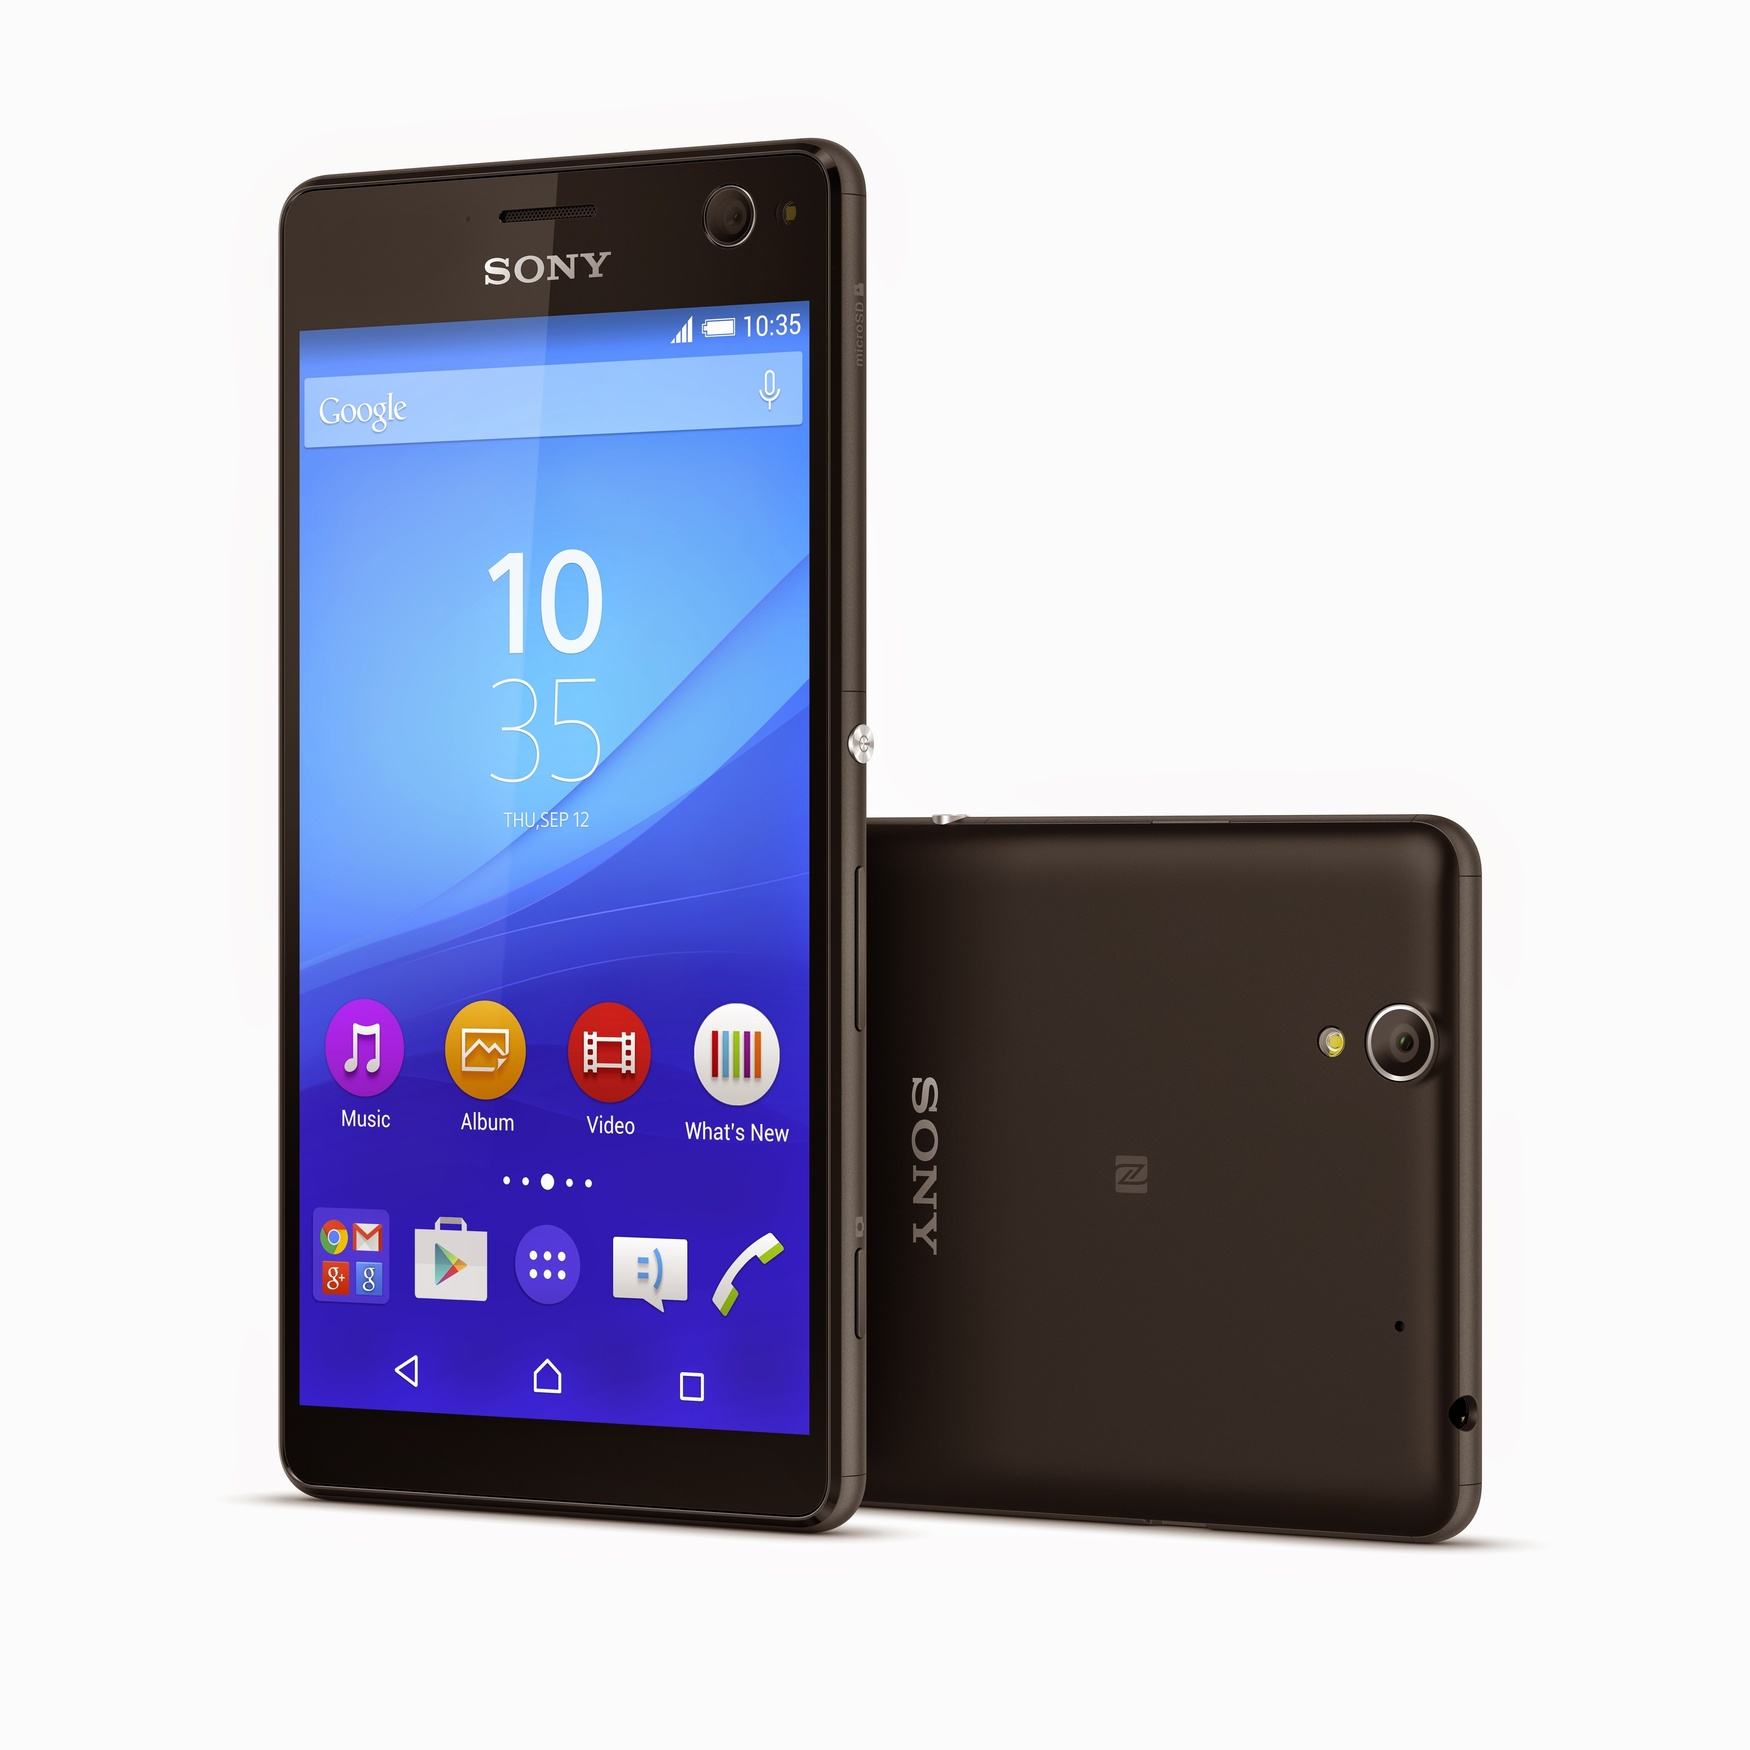 Sony-Xperia-C4-images (7)